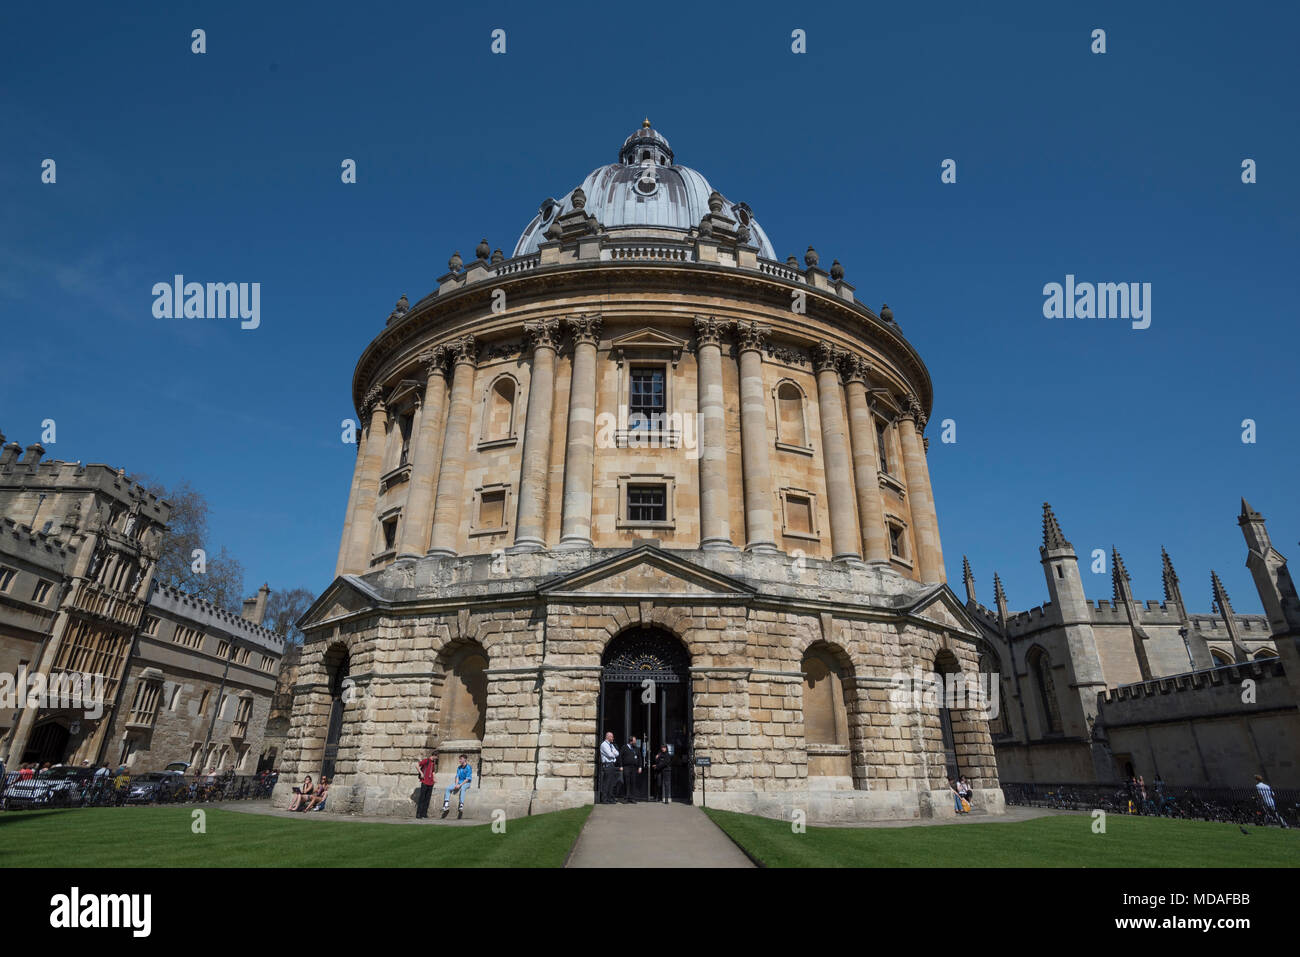 Oxford, UK. 19th April 2018. The world-famous Radcliffe Camera, part of Oxford University's Bodleian Library, looks resplendent in the glorious spring sunshine. Today is predicted to be one of the hottest April days on record, at around 27°C. Credit: Martin Anderson/Alamy Live News. - Stock Image